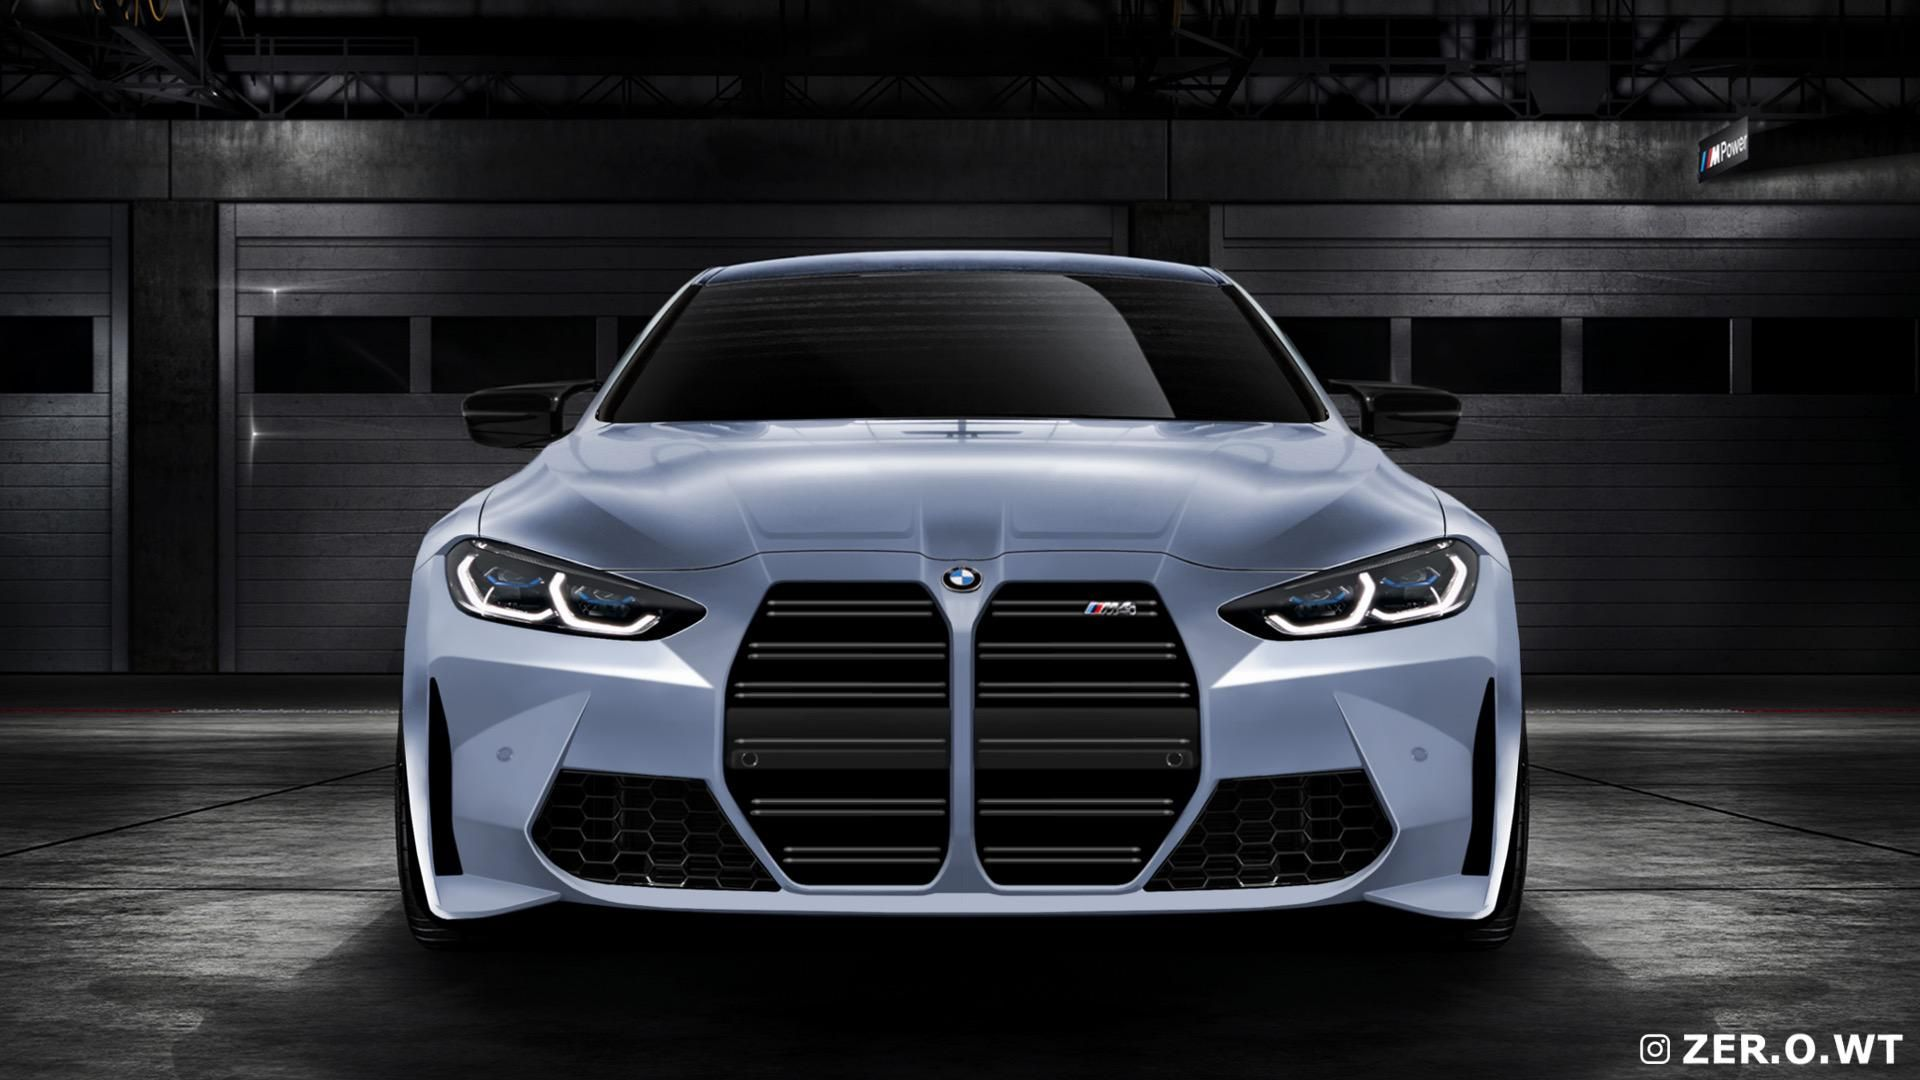 2021 Bmw M4 G82 A New Render Based On Recent Leaks In 2020 Bmw M4 Bmw Bmw Love